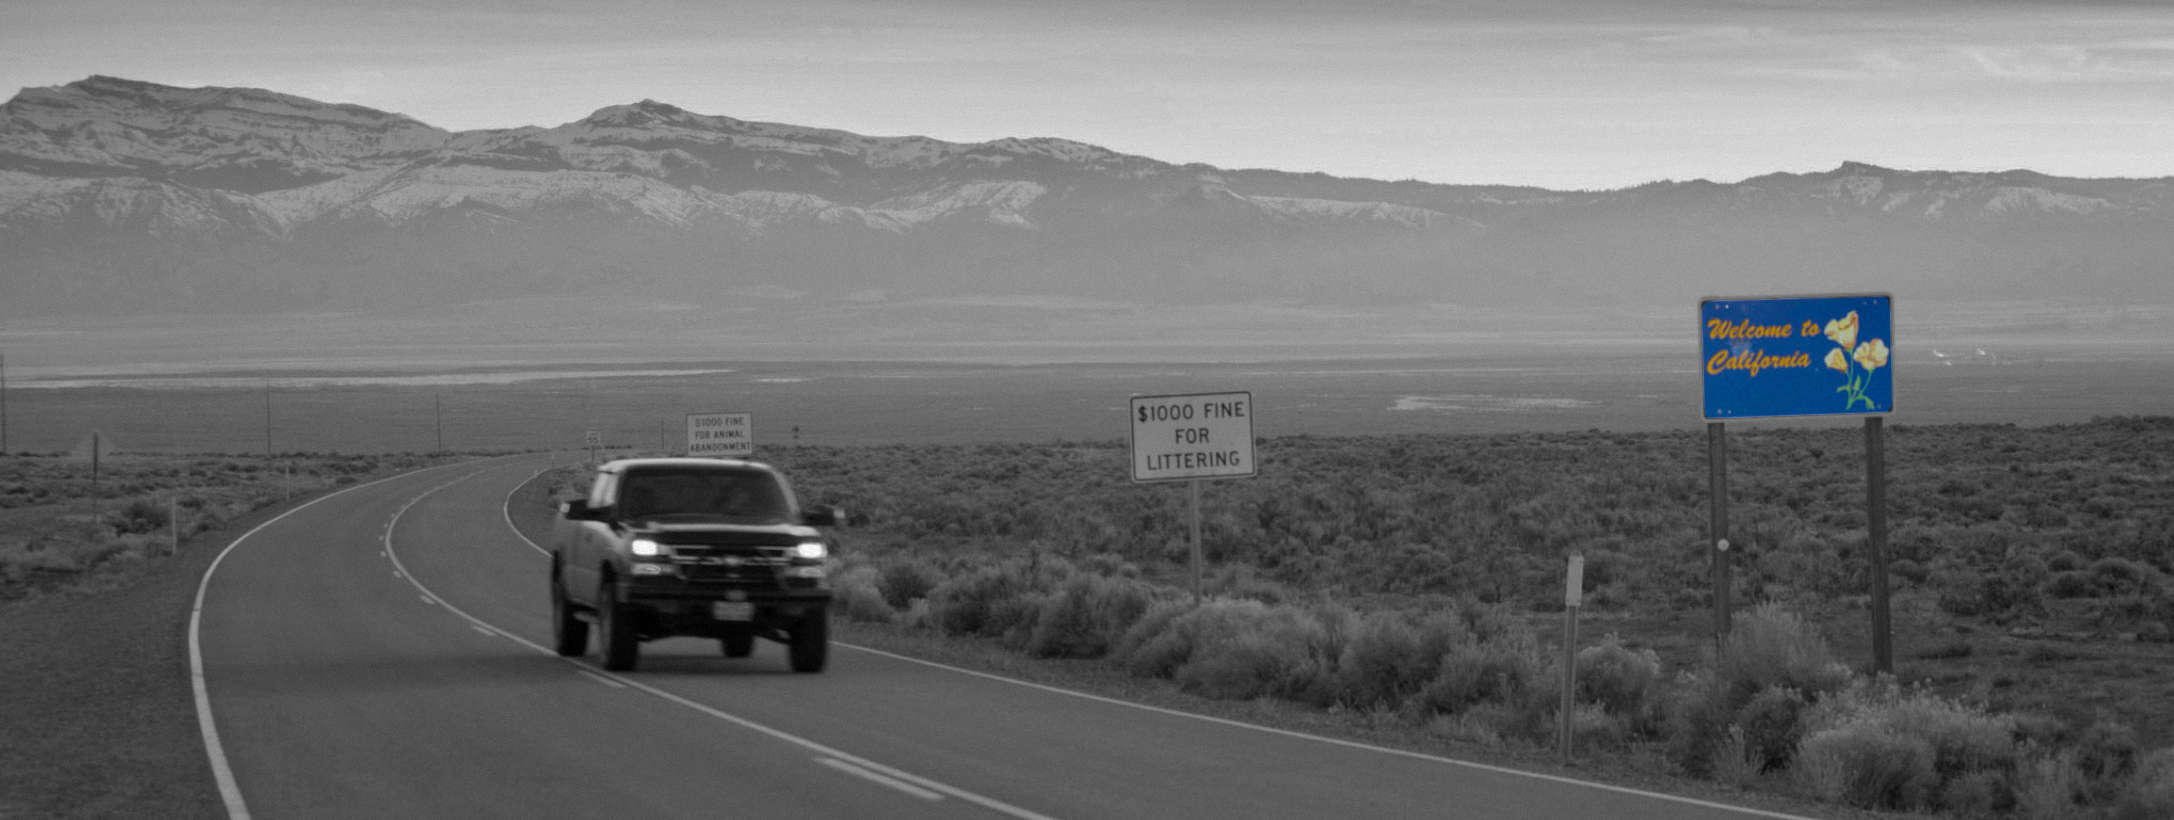 Black and white photograph of a highway in front of a mountain range, with a colour sign that says 'Welcome to California'